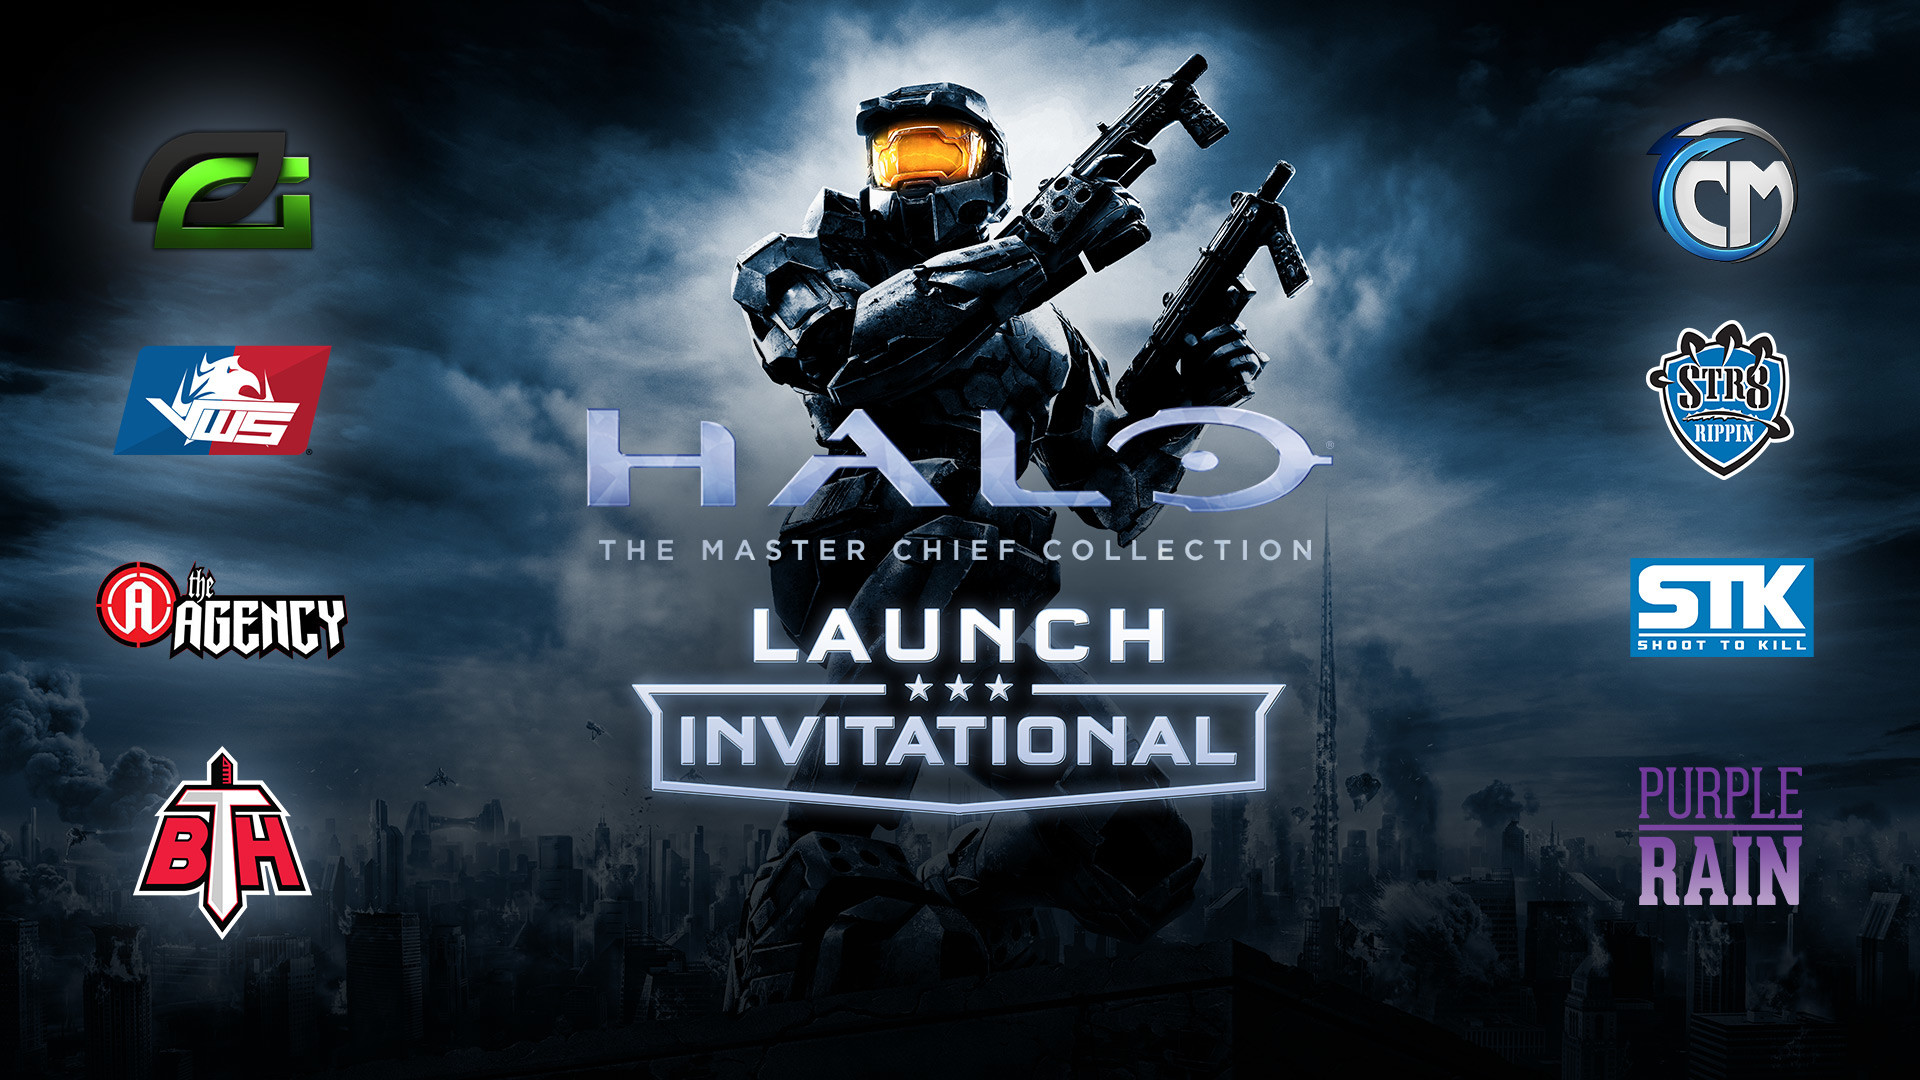 Launch Invitational Wallpapers   Halo: The Master Chief Collection   Halo –  Official Site